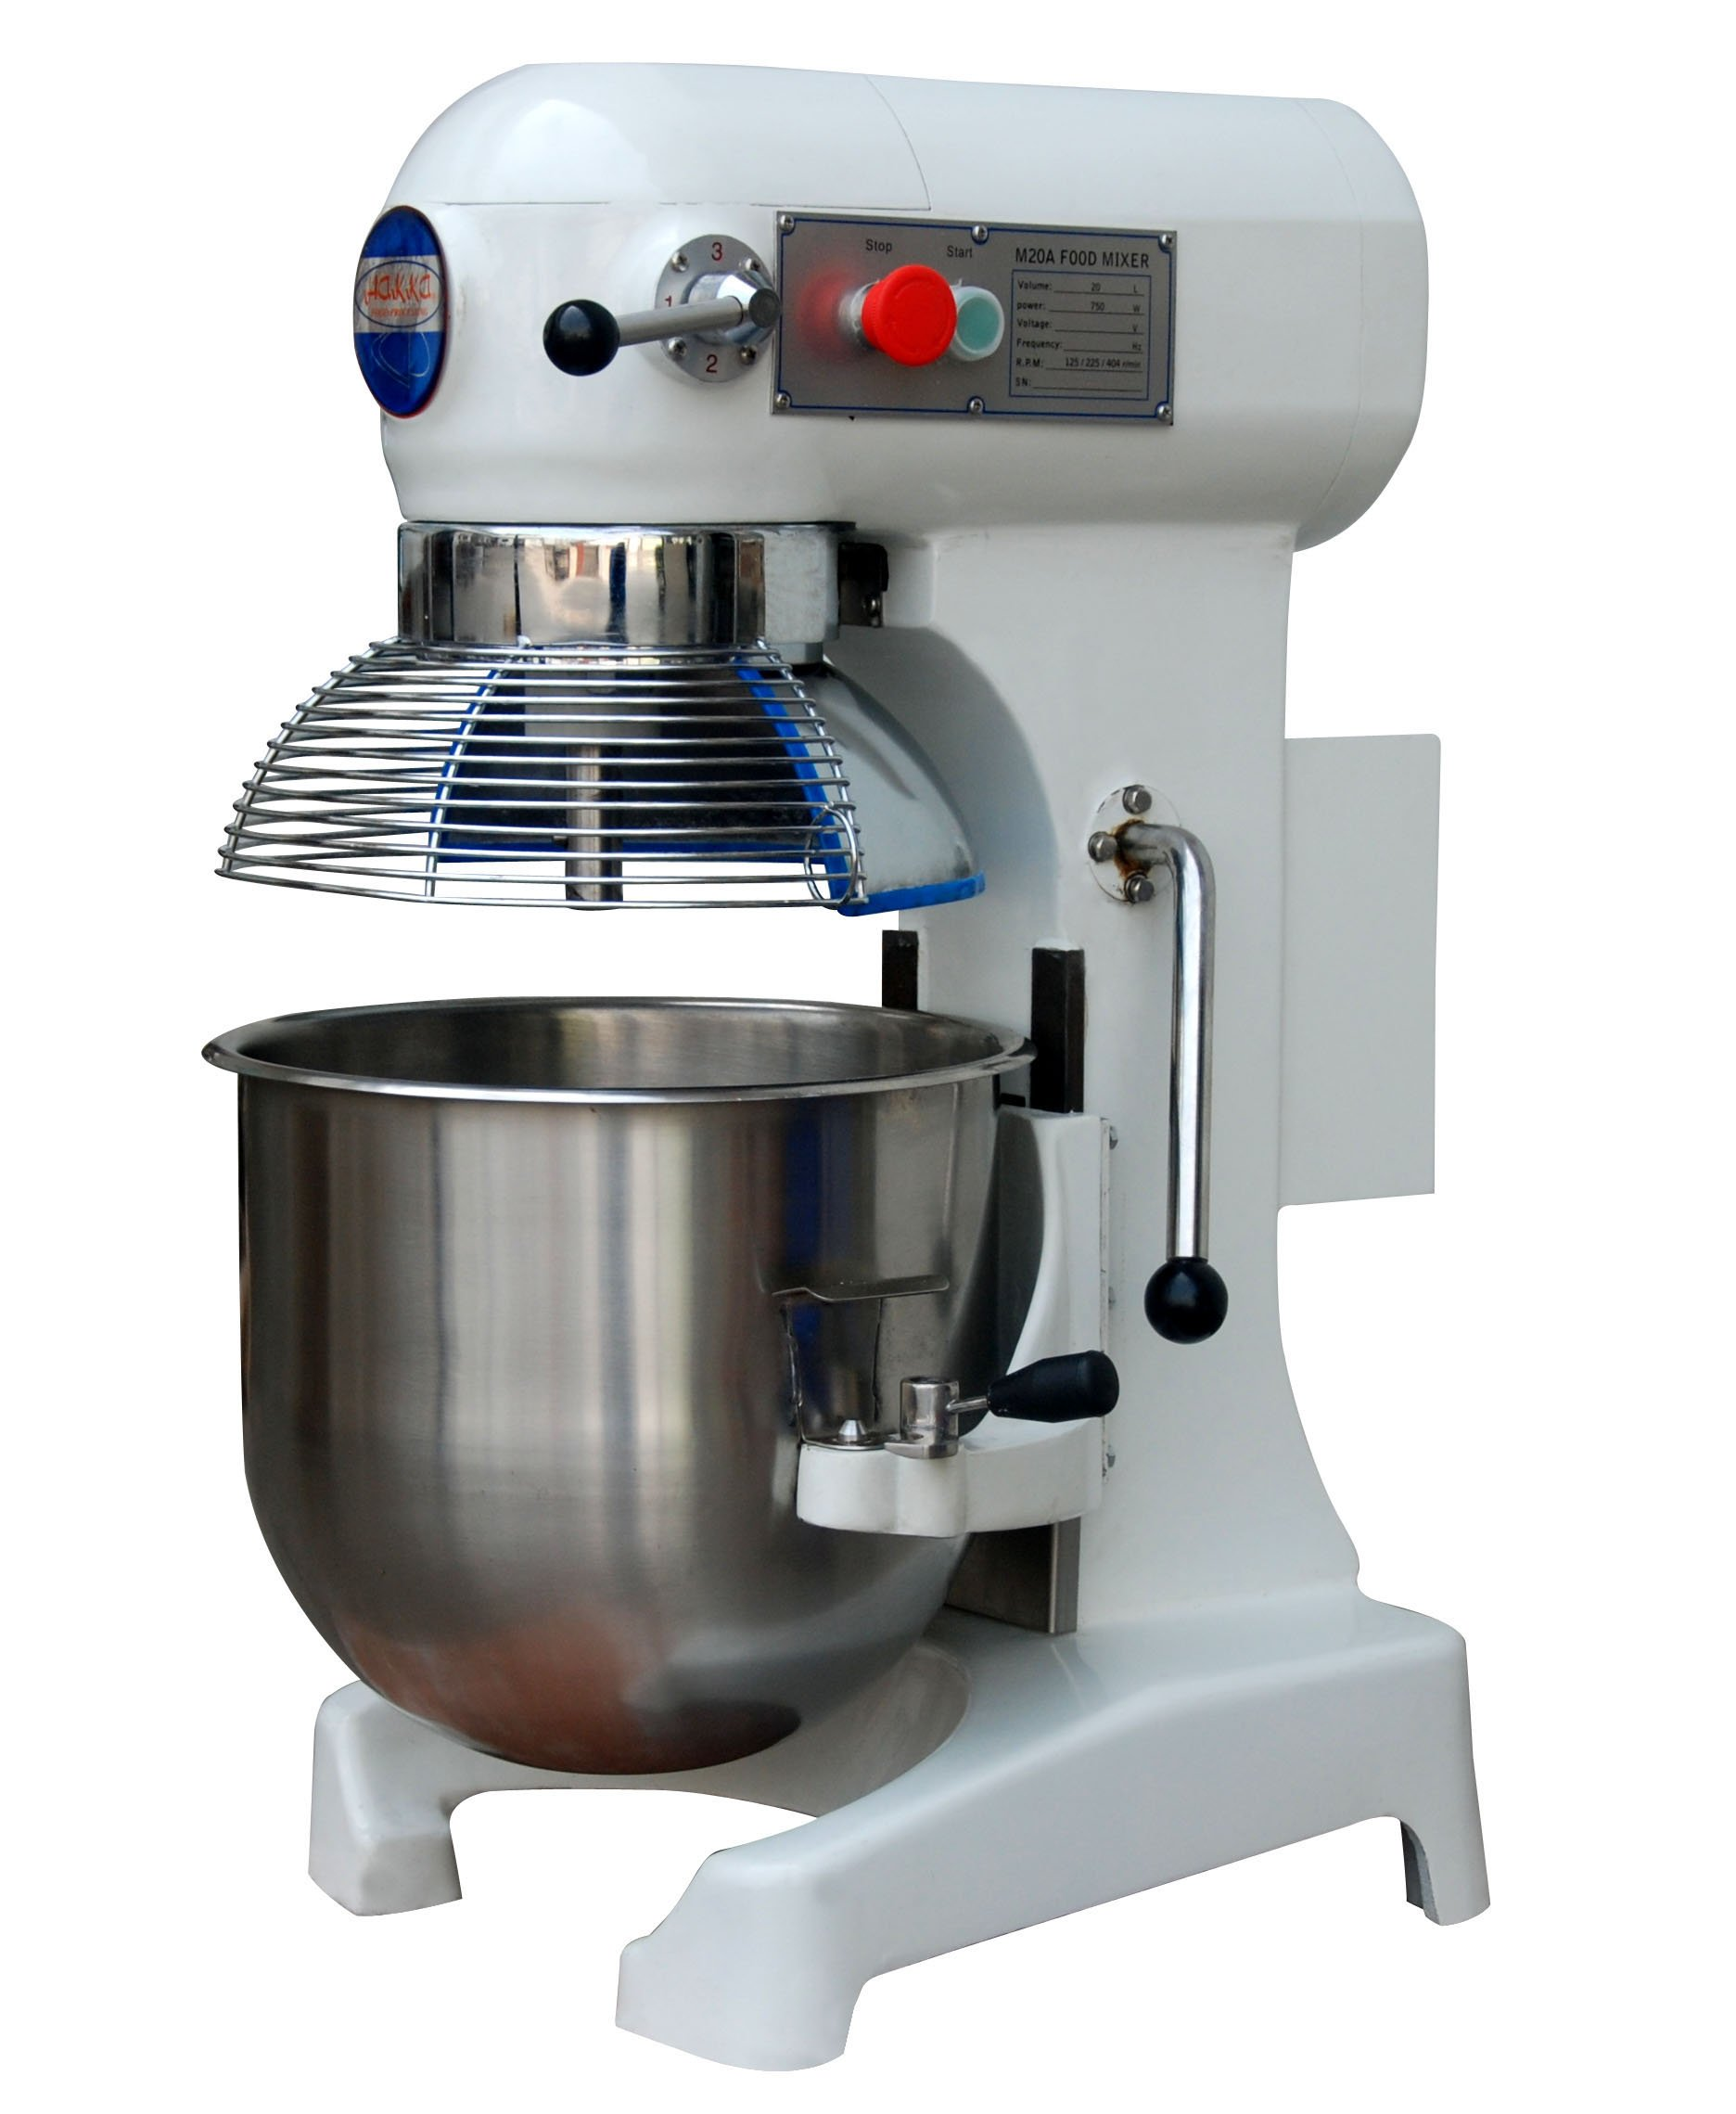 Hakka Commercial Planetary Mixers 3 Funtion Stainless Steel Food Mixer (20 Quart(M20A))